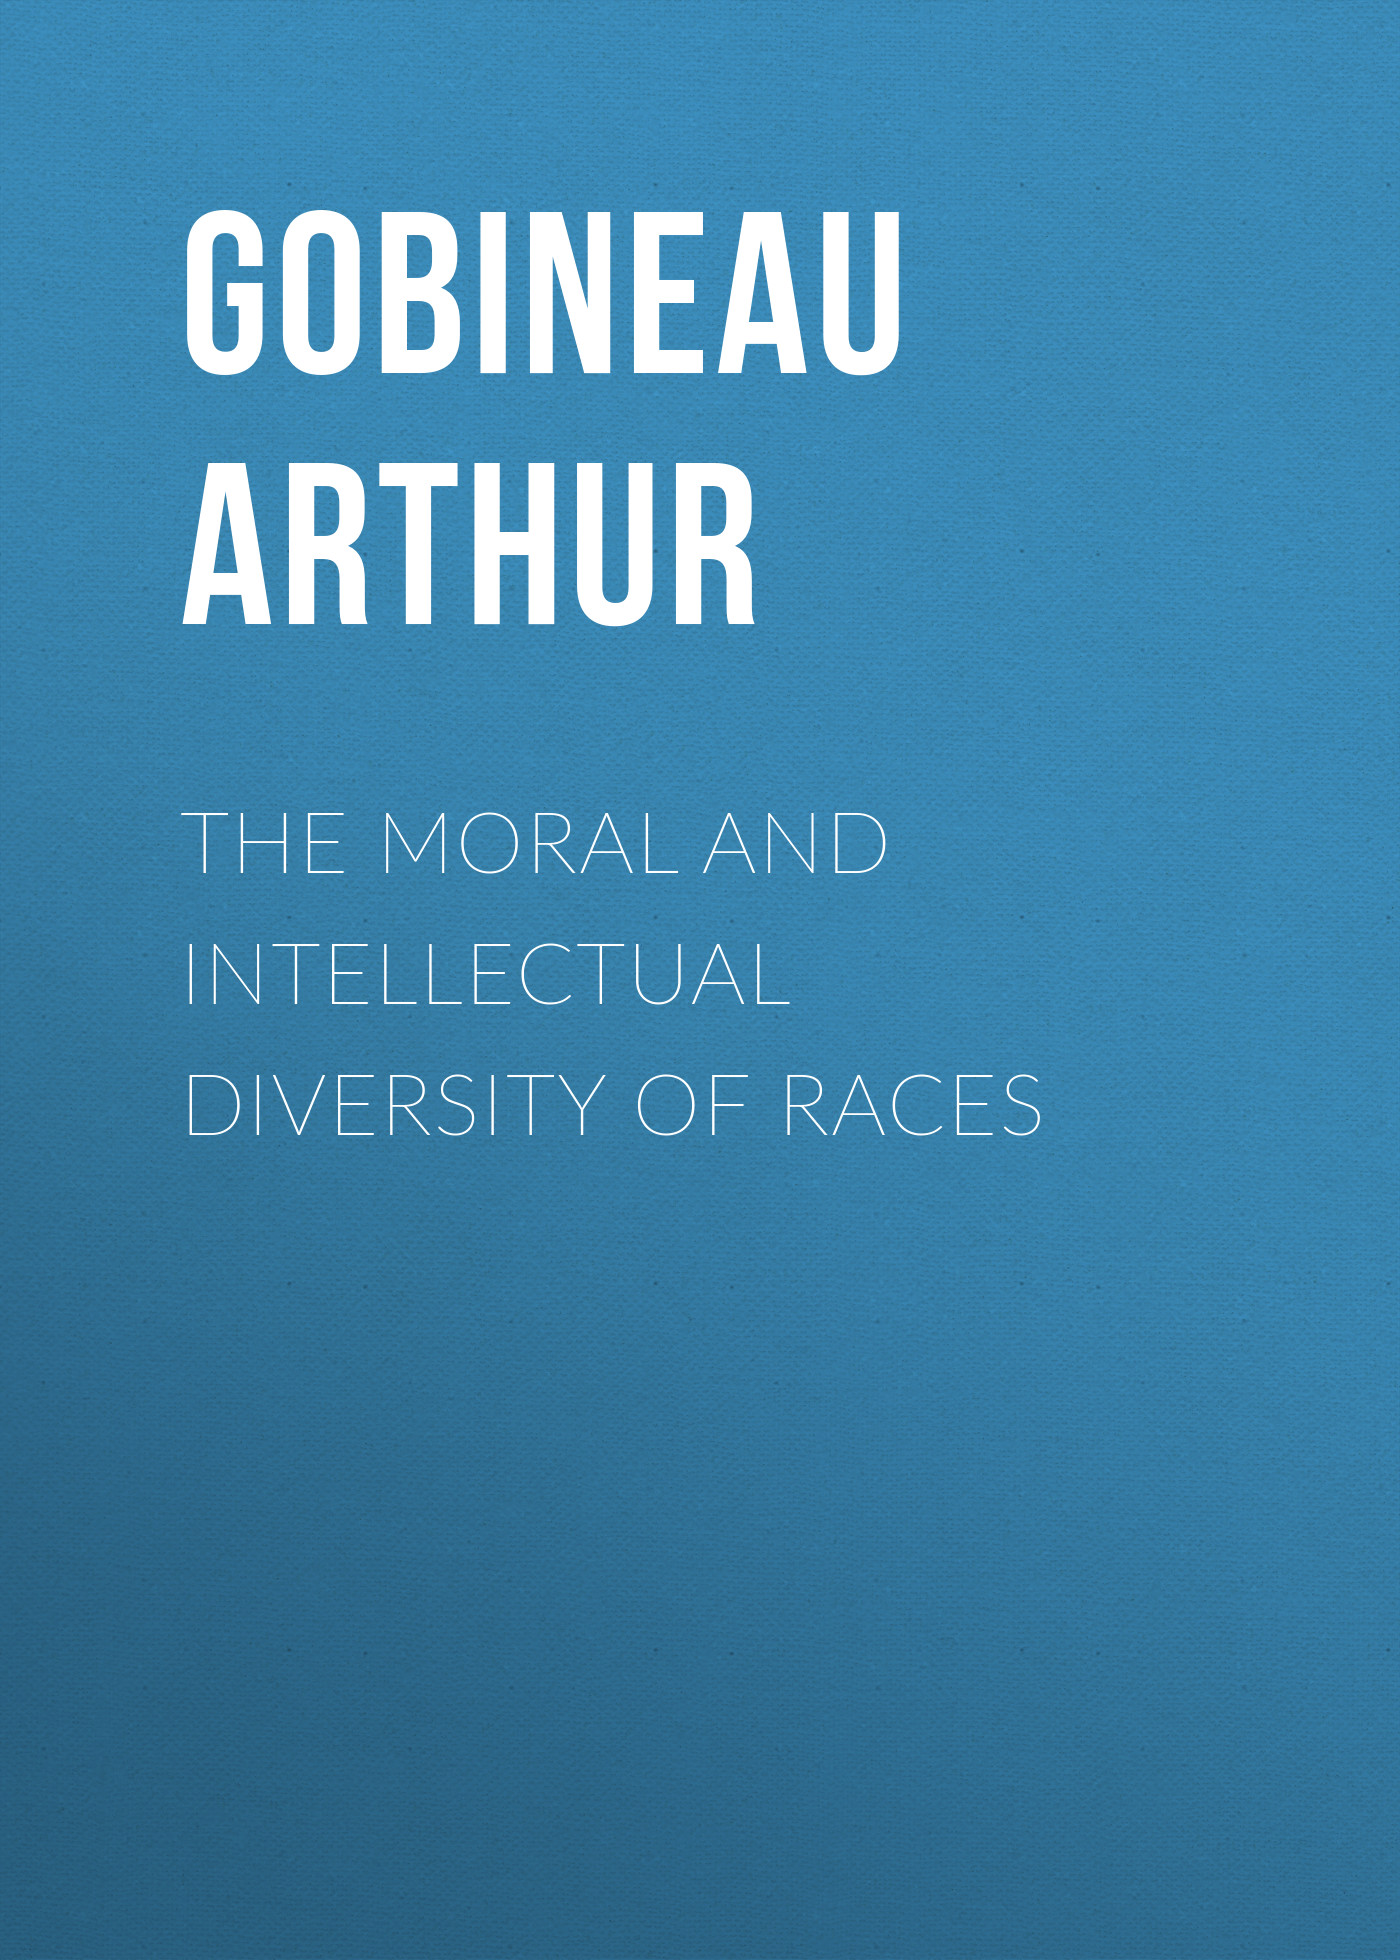 Gobineau Arthur The Moral and Intellectual Diversity of Races салфетки duni 3 сл 33 см 20 шт barbeque grill